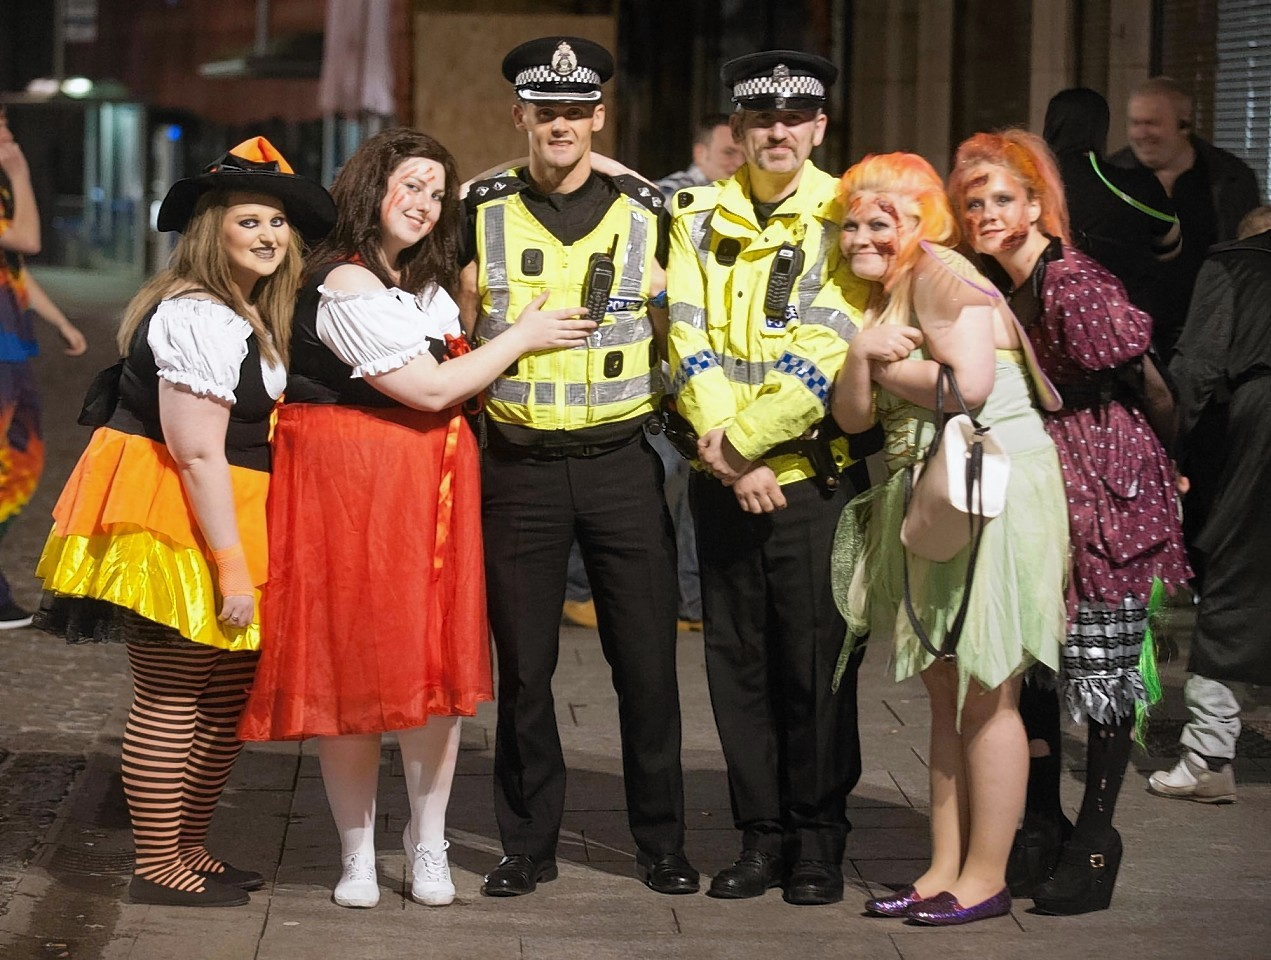 Police in Peterhead on one of their busiest nights of the year